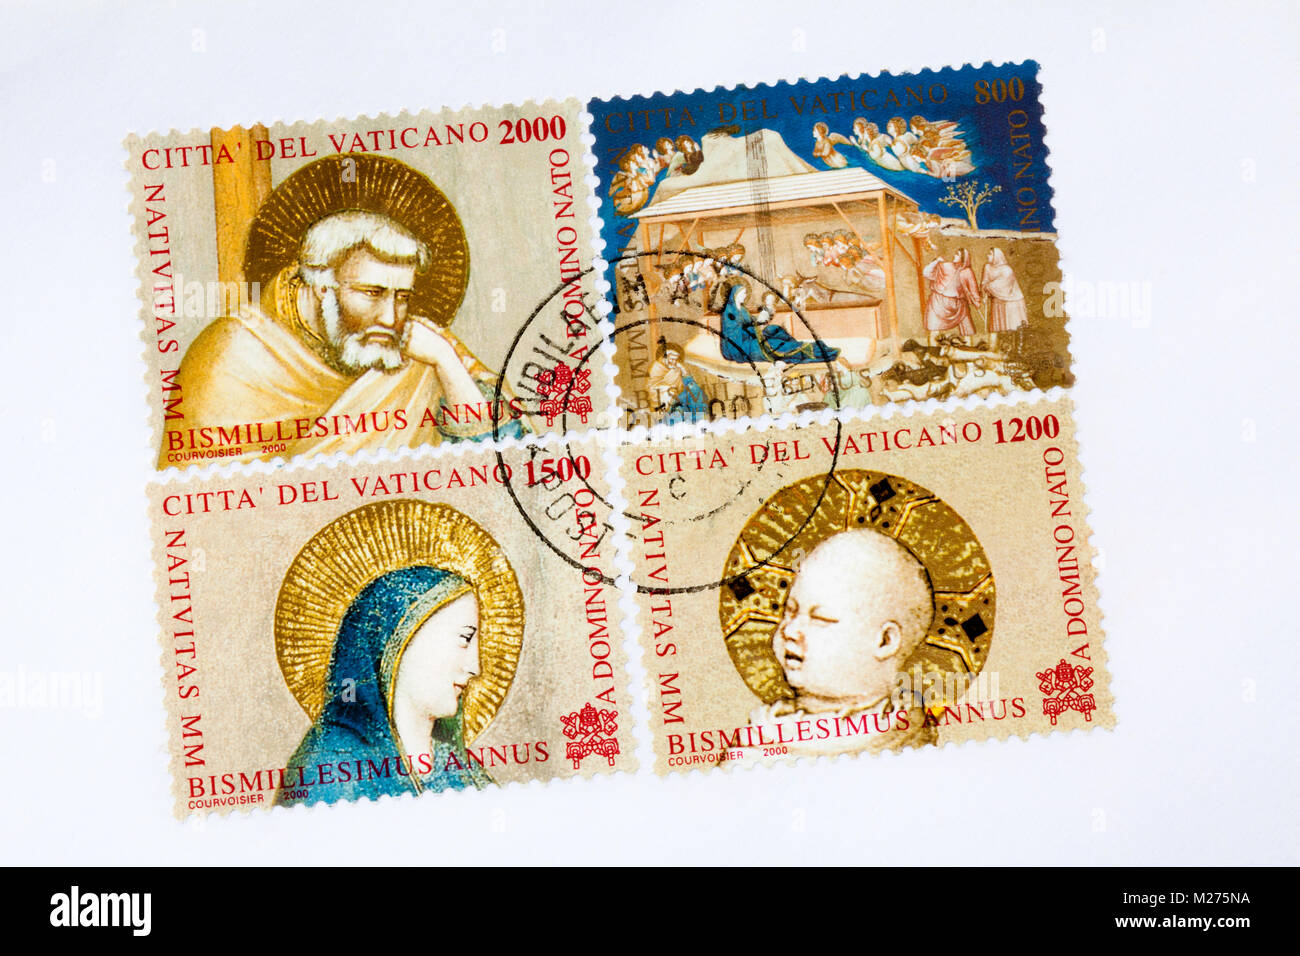 Stamps from the Vatican on a letter, Stamped, Vatican, Italy, Europe, Gestempelte Briefmarken aus dem Vatikan, Weihnachten Stock Photo